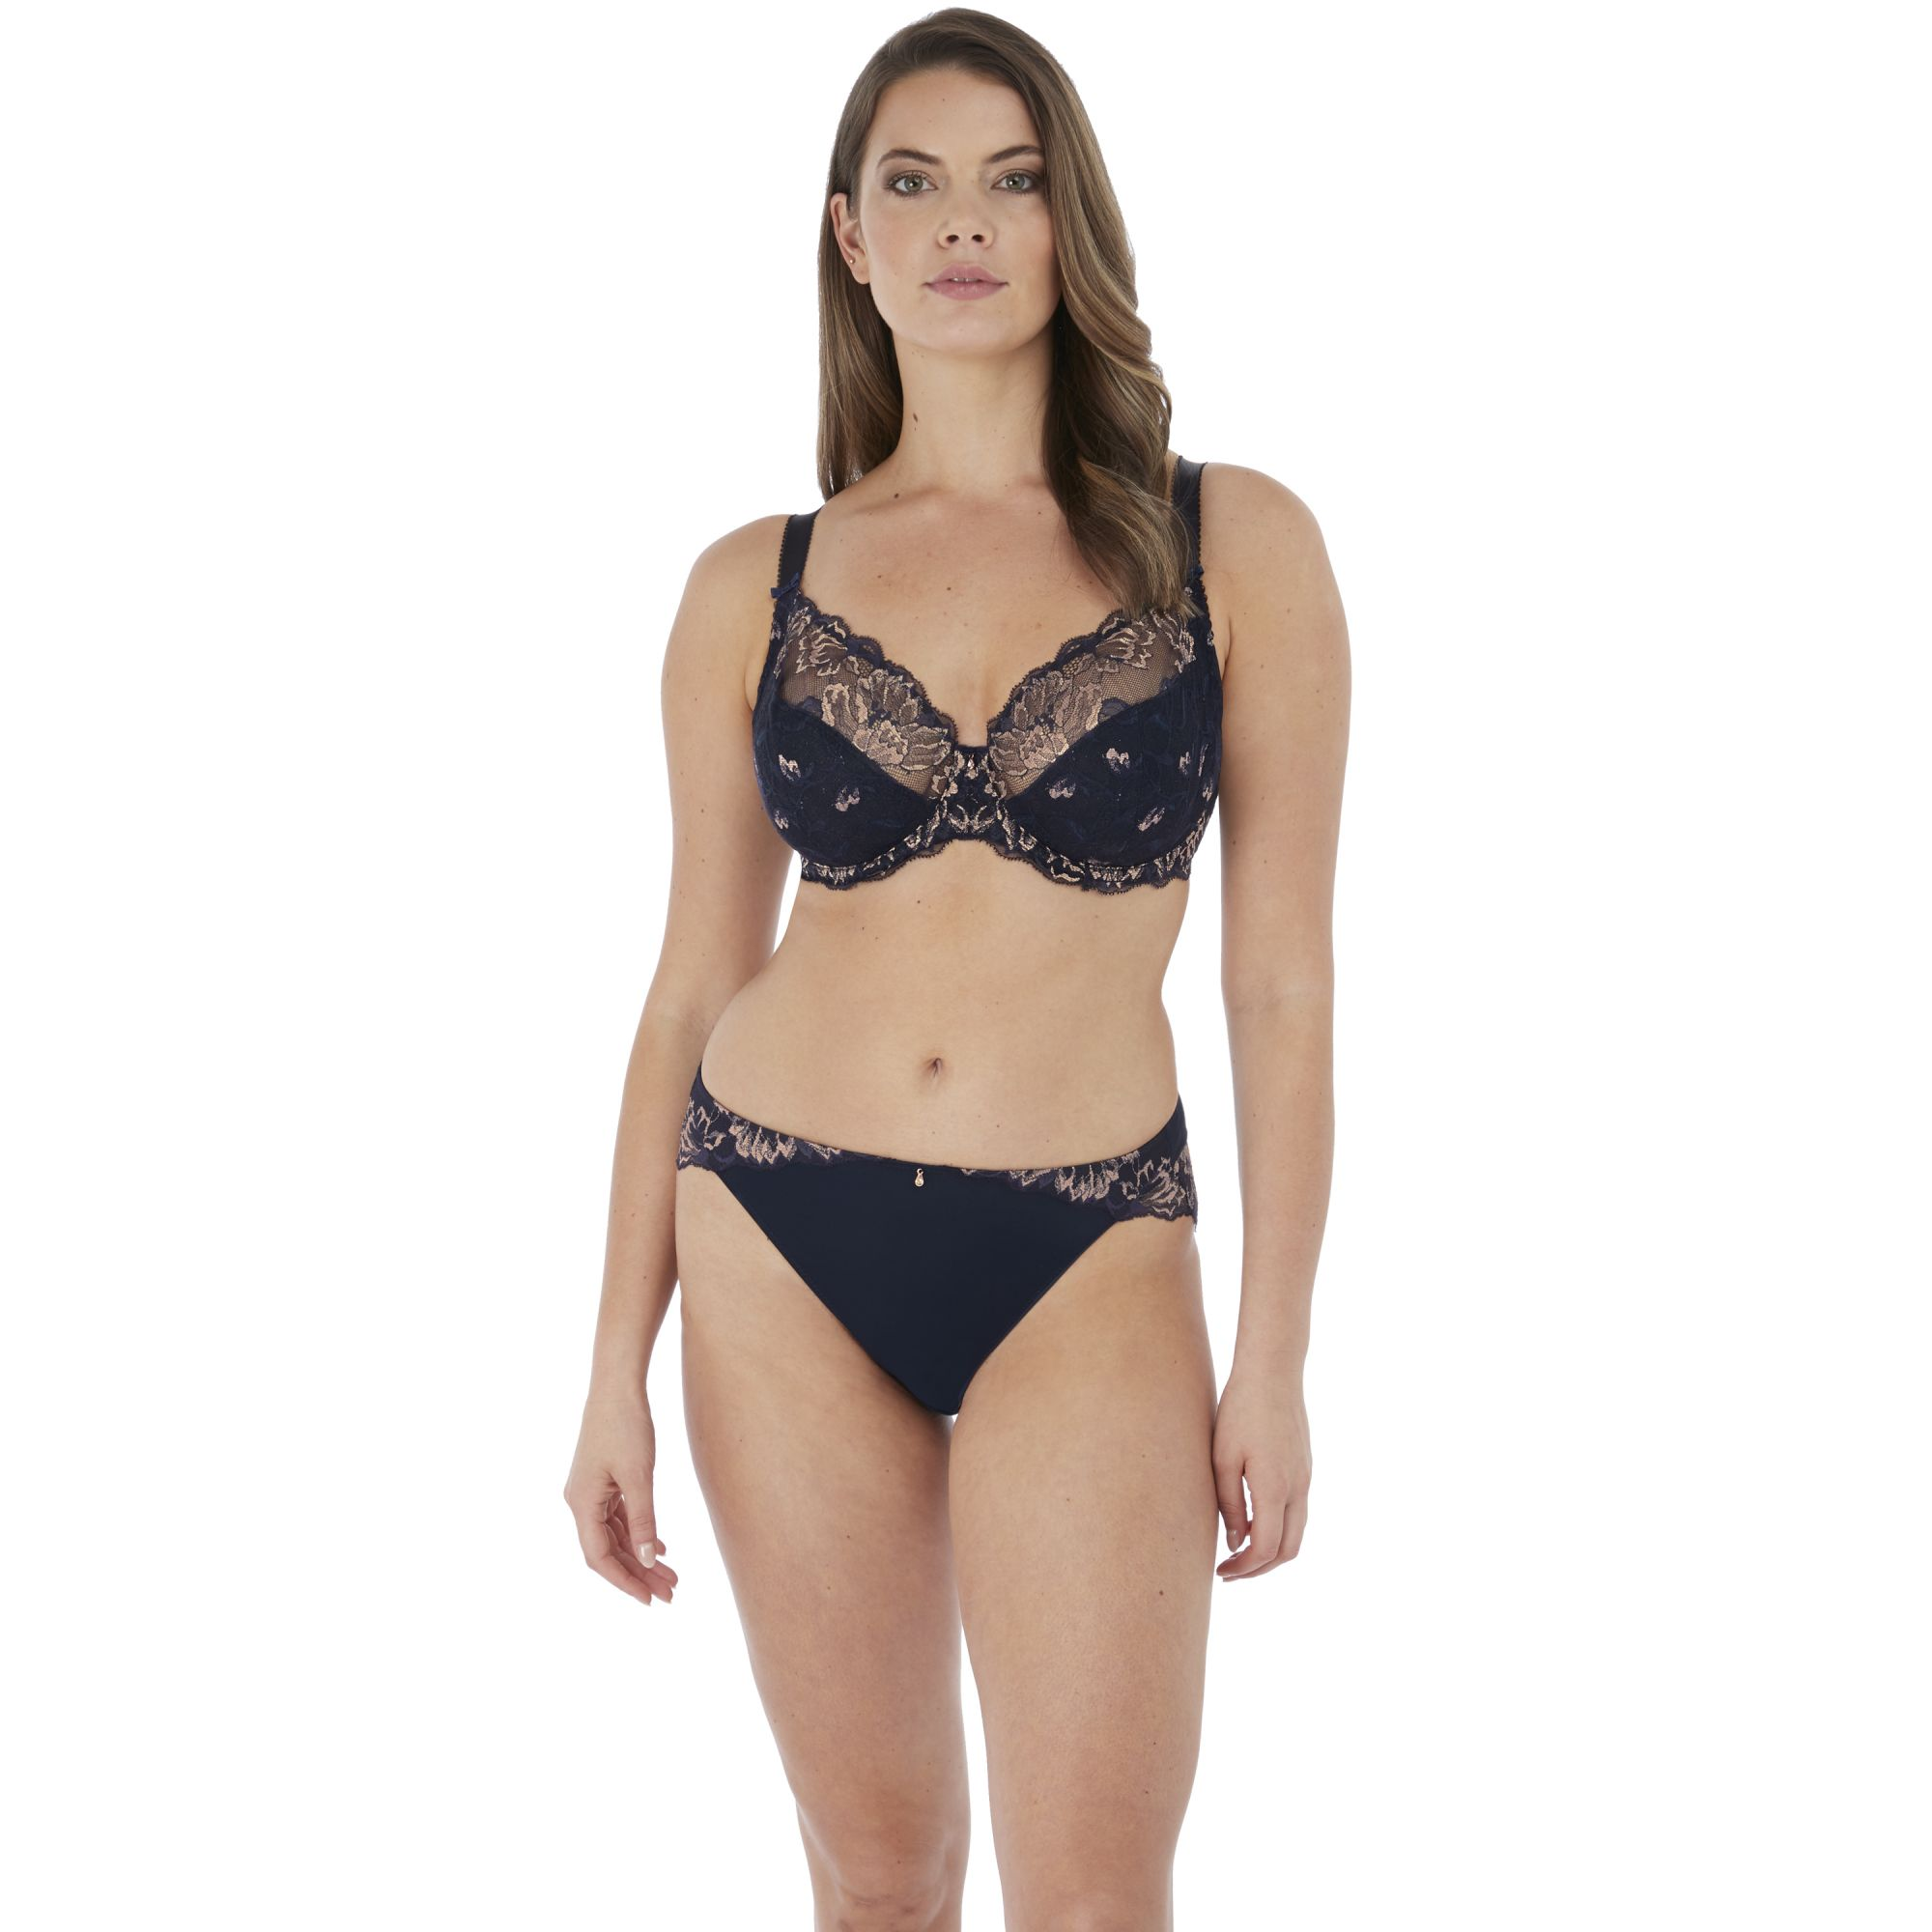 AUBREE-NAVY-UW-SIDE-SUPPORT-BRA-FL6932-BRIEF-FL6935-F-TRADE-3000-SS21